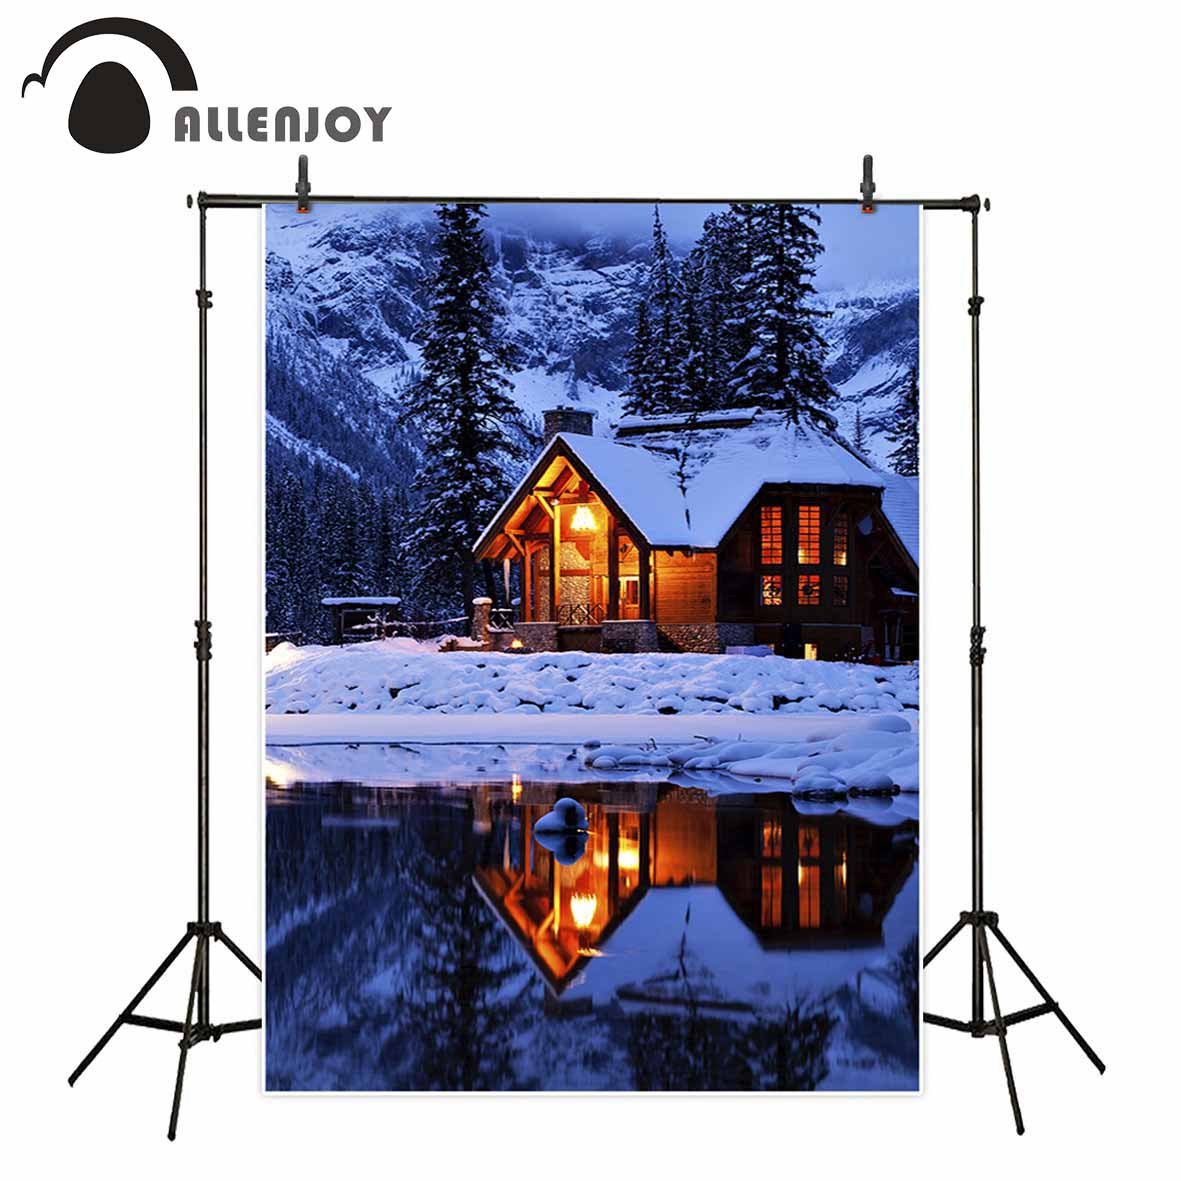 Allenjoy winter background for photos mountain house river snow tree natural photocall backdrop professional photobooth mary pope osborne magic tree house 43 leprechaun in late winter